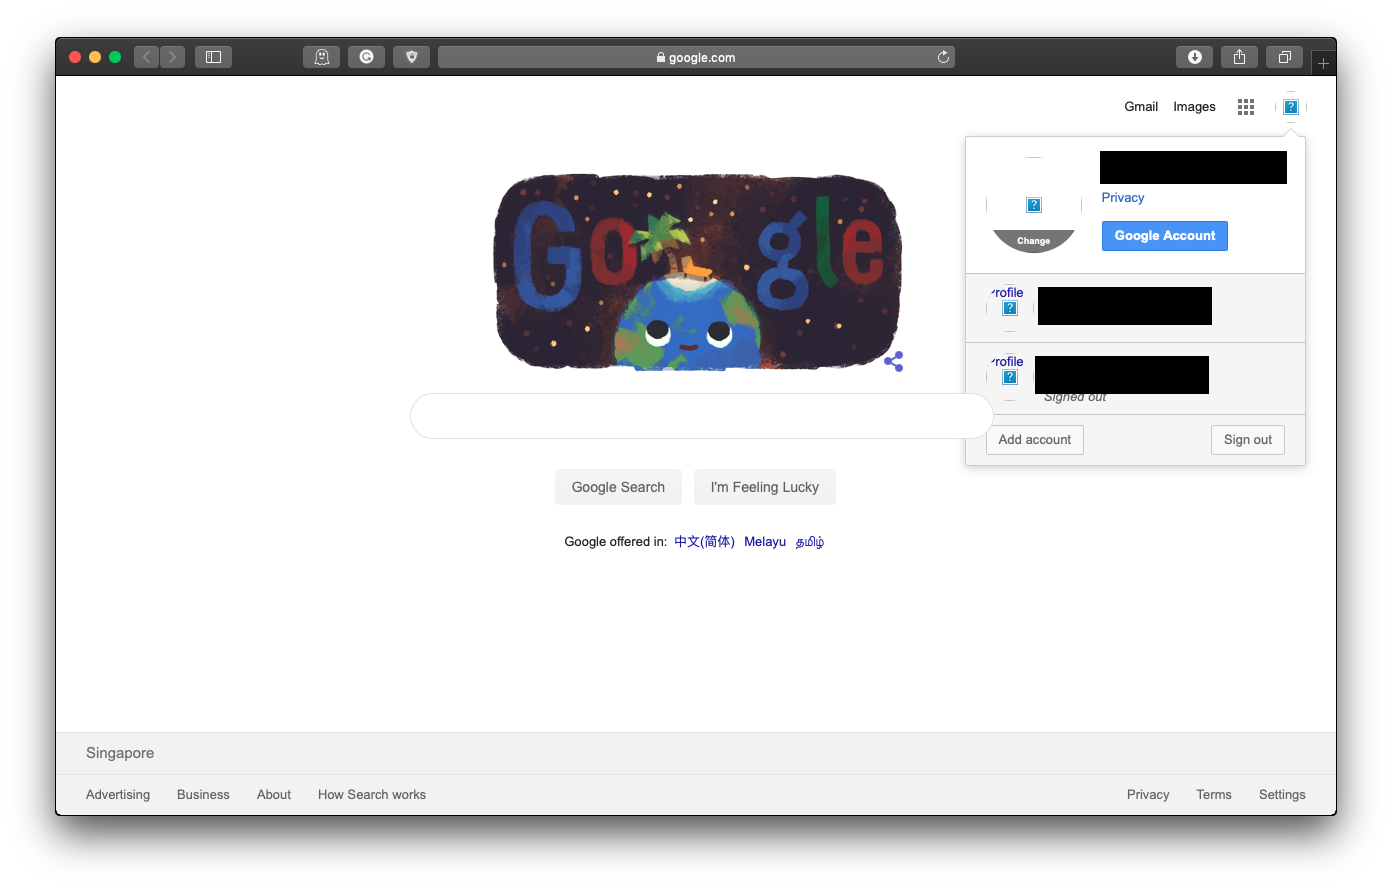 Pictures and icons from google sites is n… - Apple Community